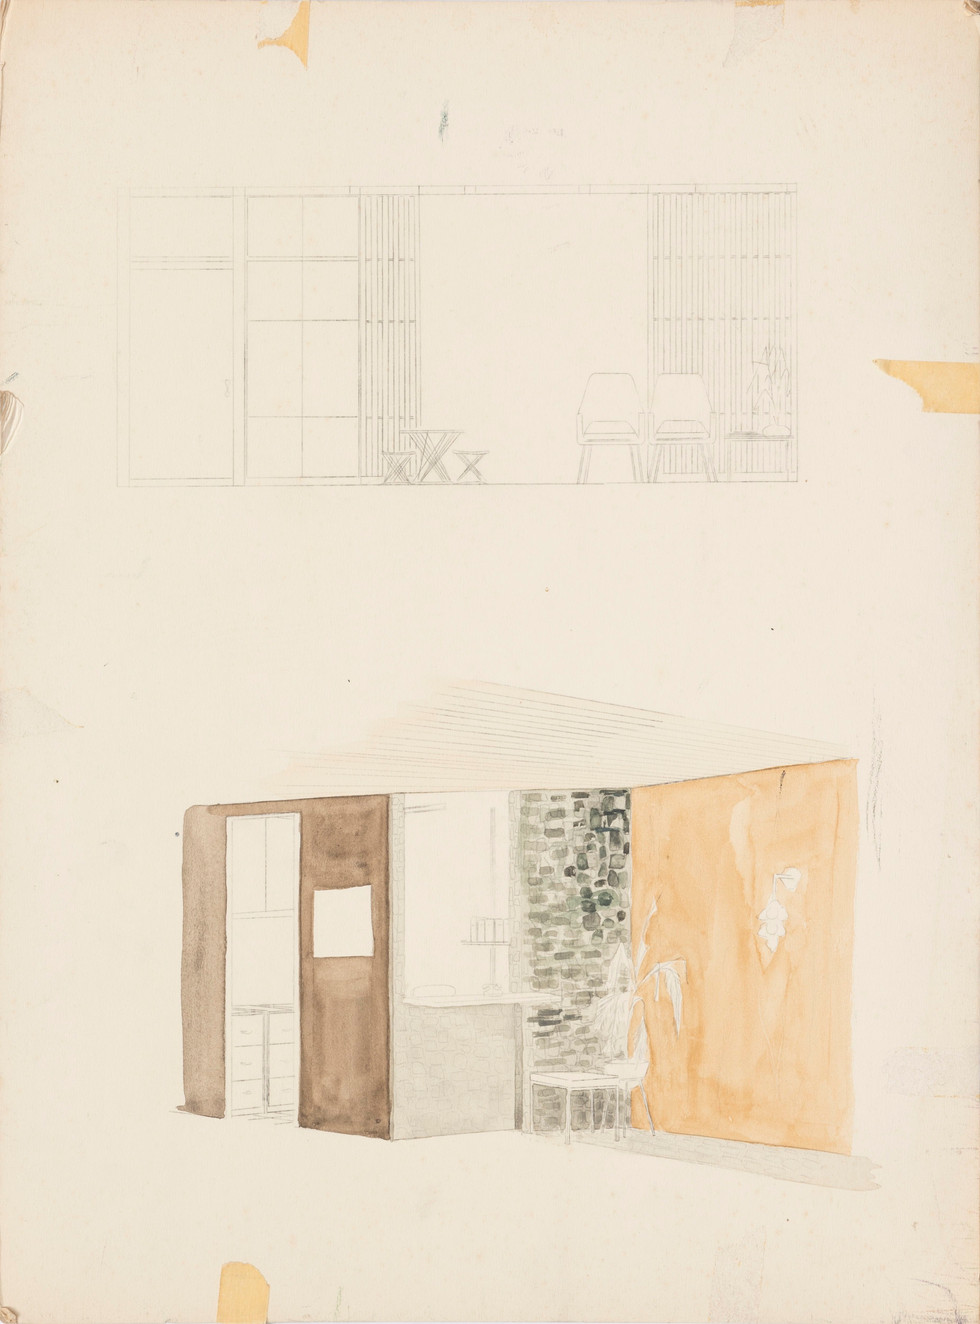 Untitled sketch - sketches of interior scene